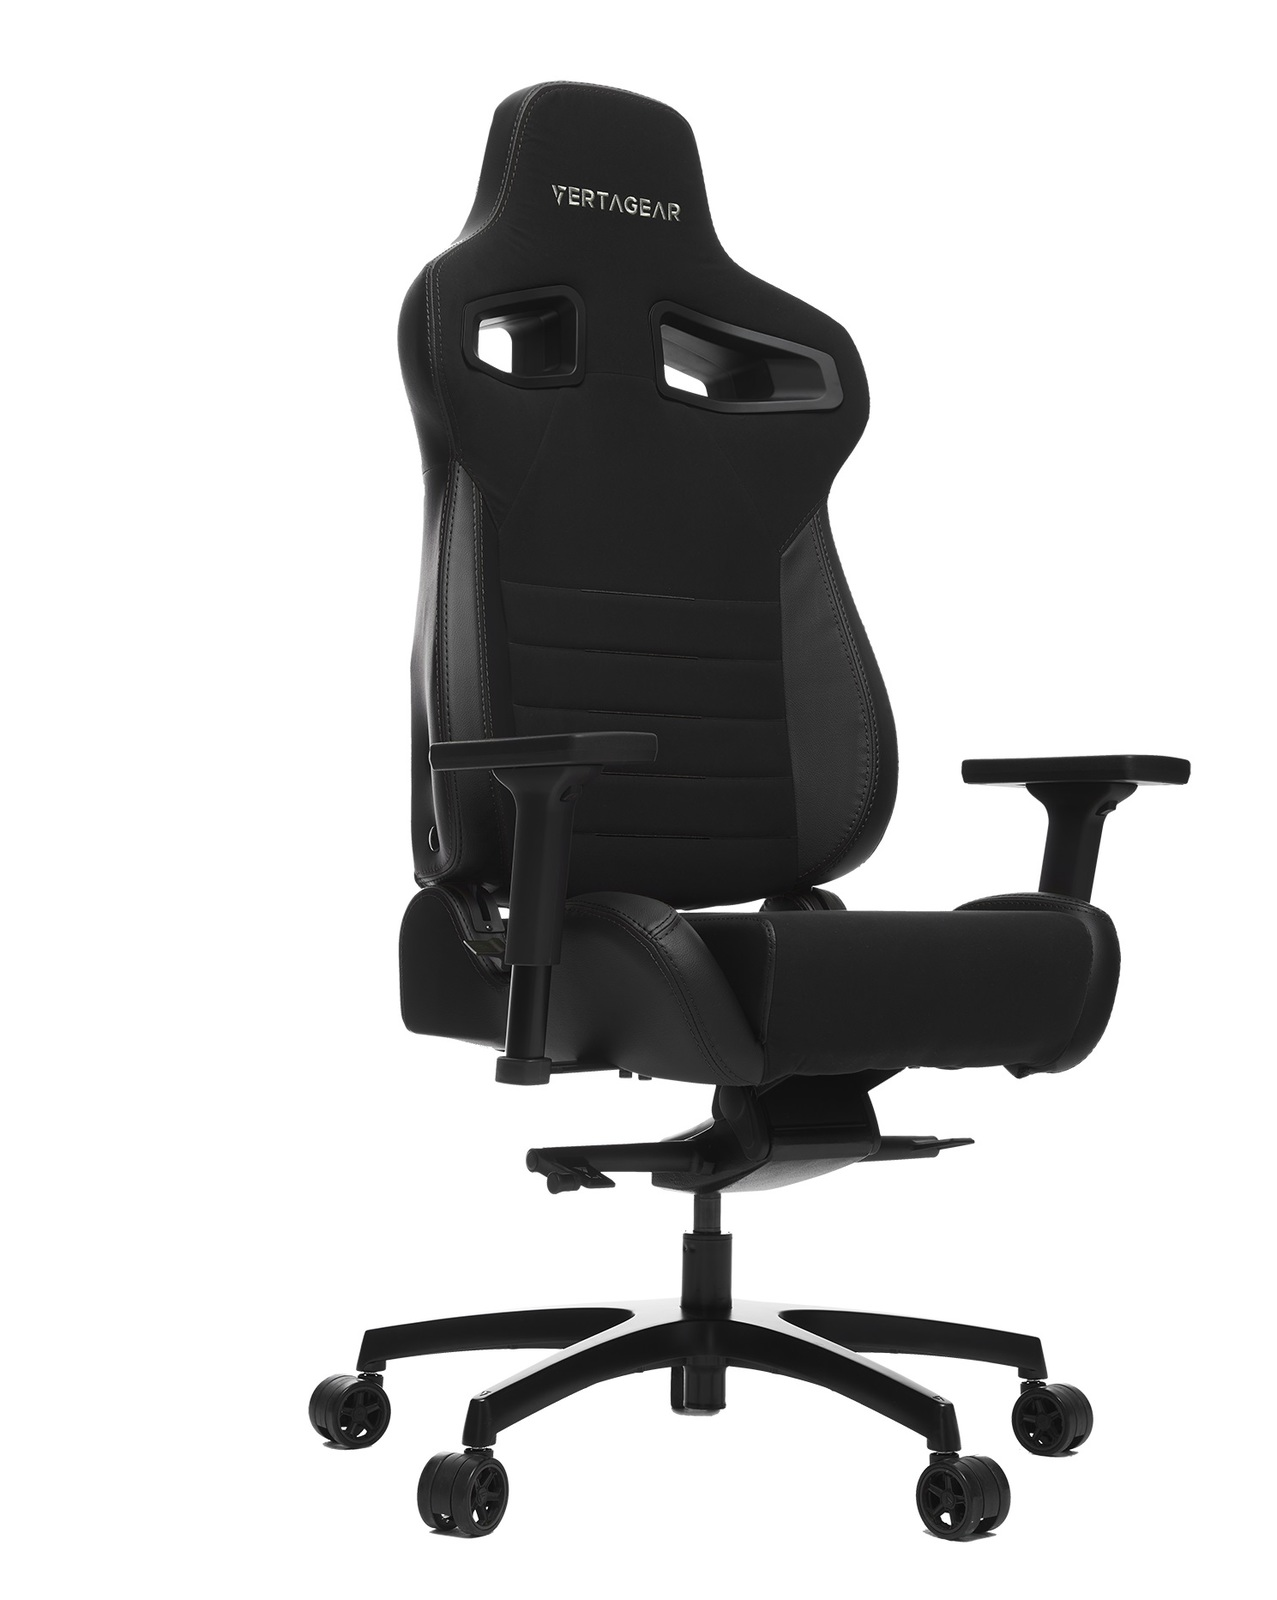 Vertagear Racing Series P-Line PL4500 Ergonomic Gaming Chair - Black for  image